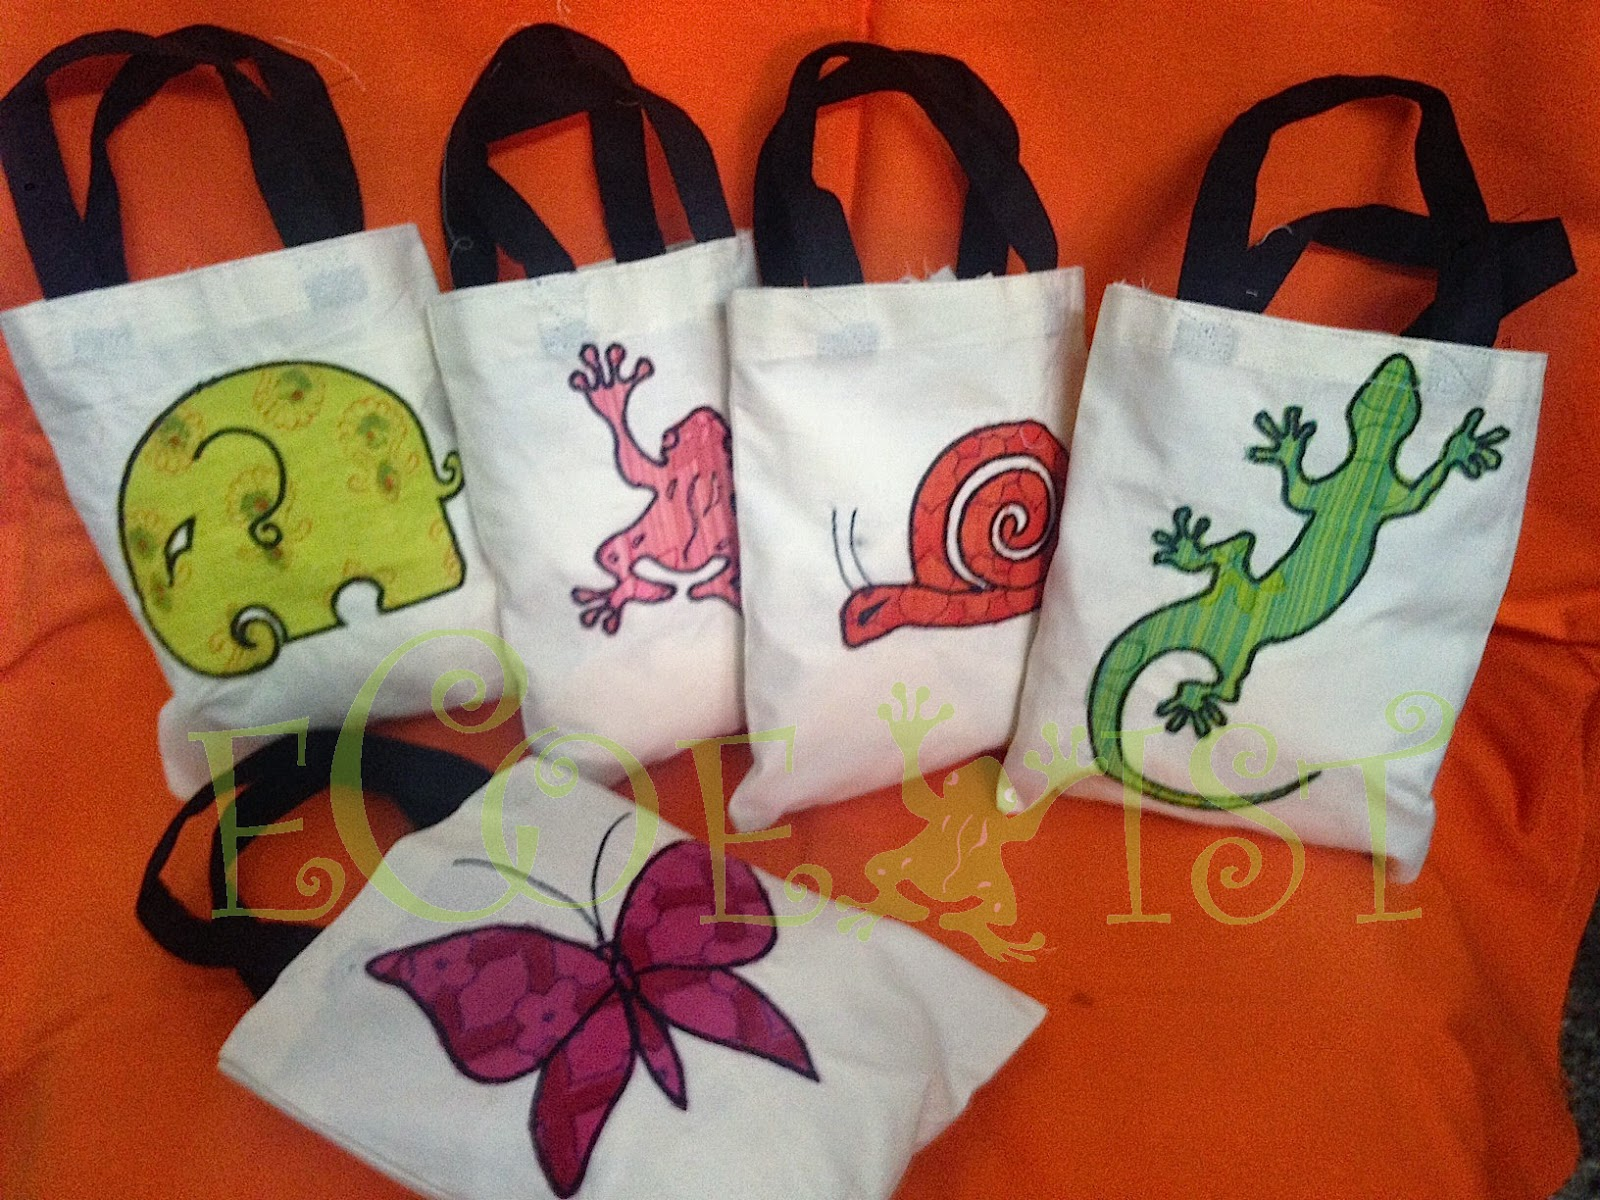 Gift applique bags the usemeagain cloth bags from ecoexist